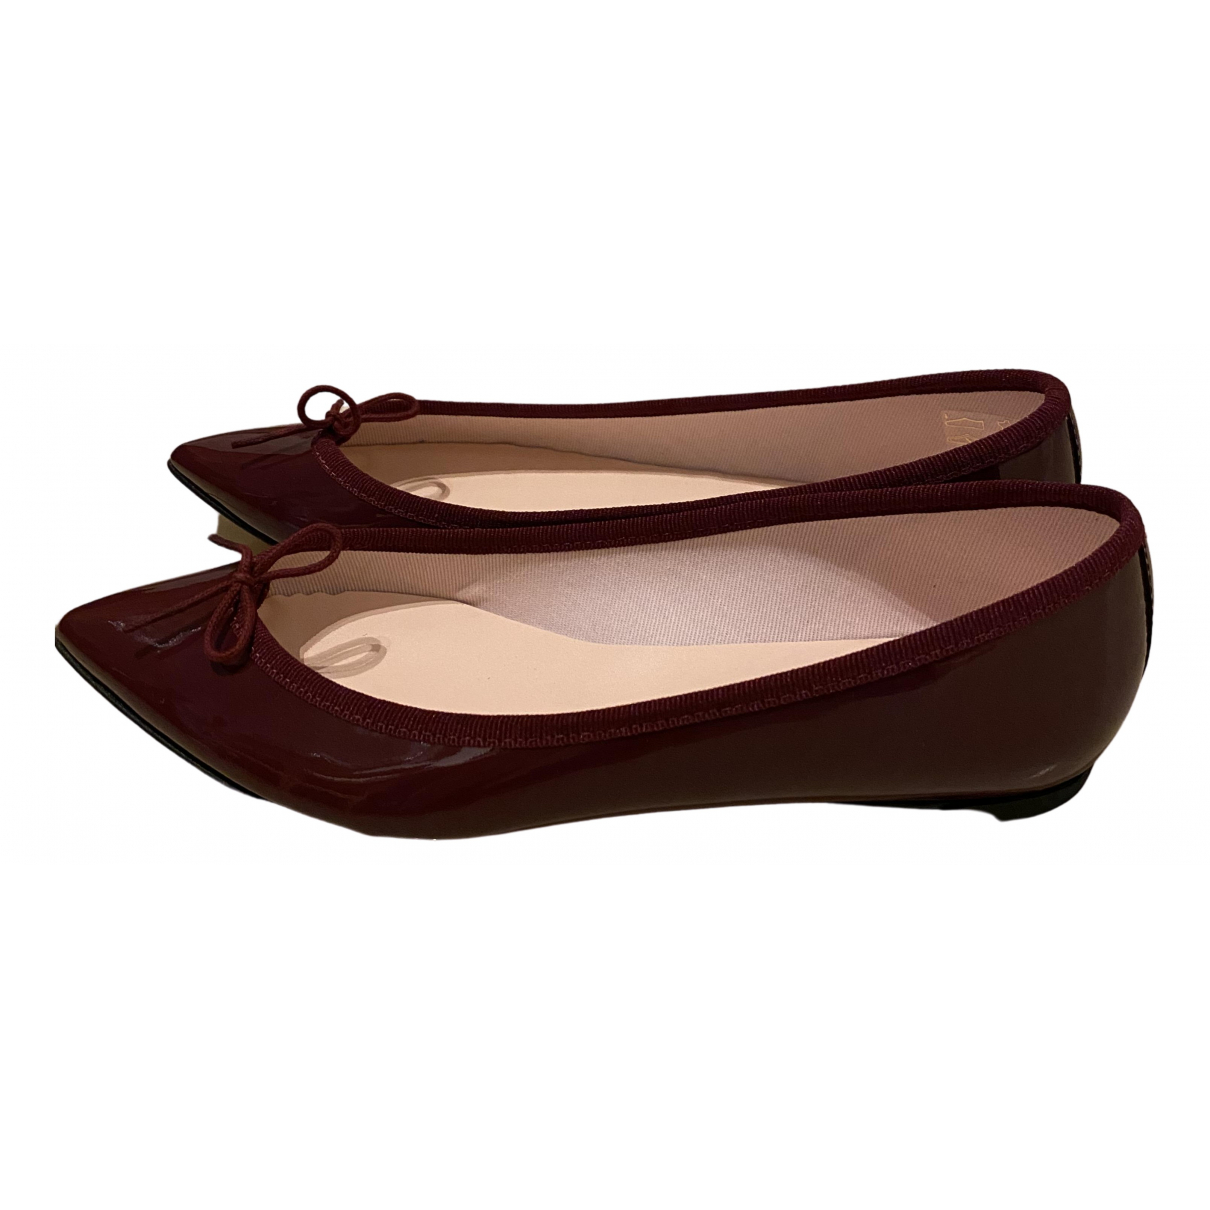 Repetto \N Burgundy Patent leather Ballet flats for Women 39.5 EU